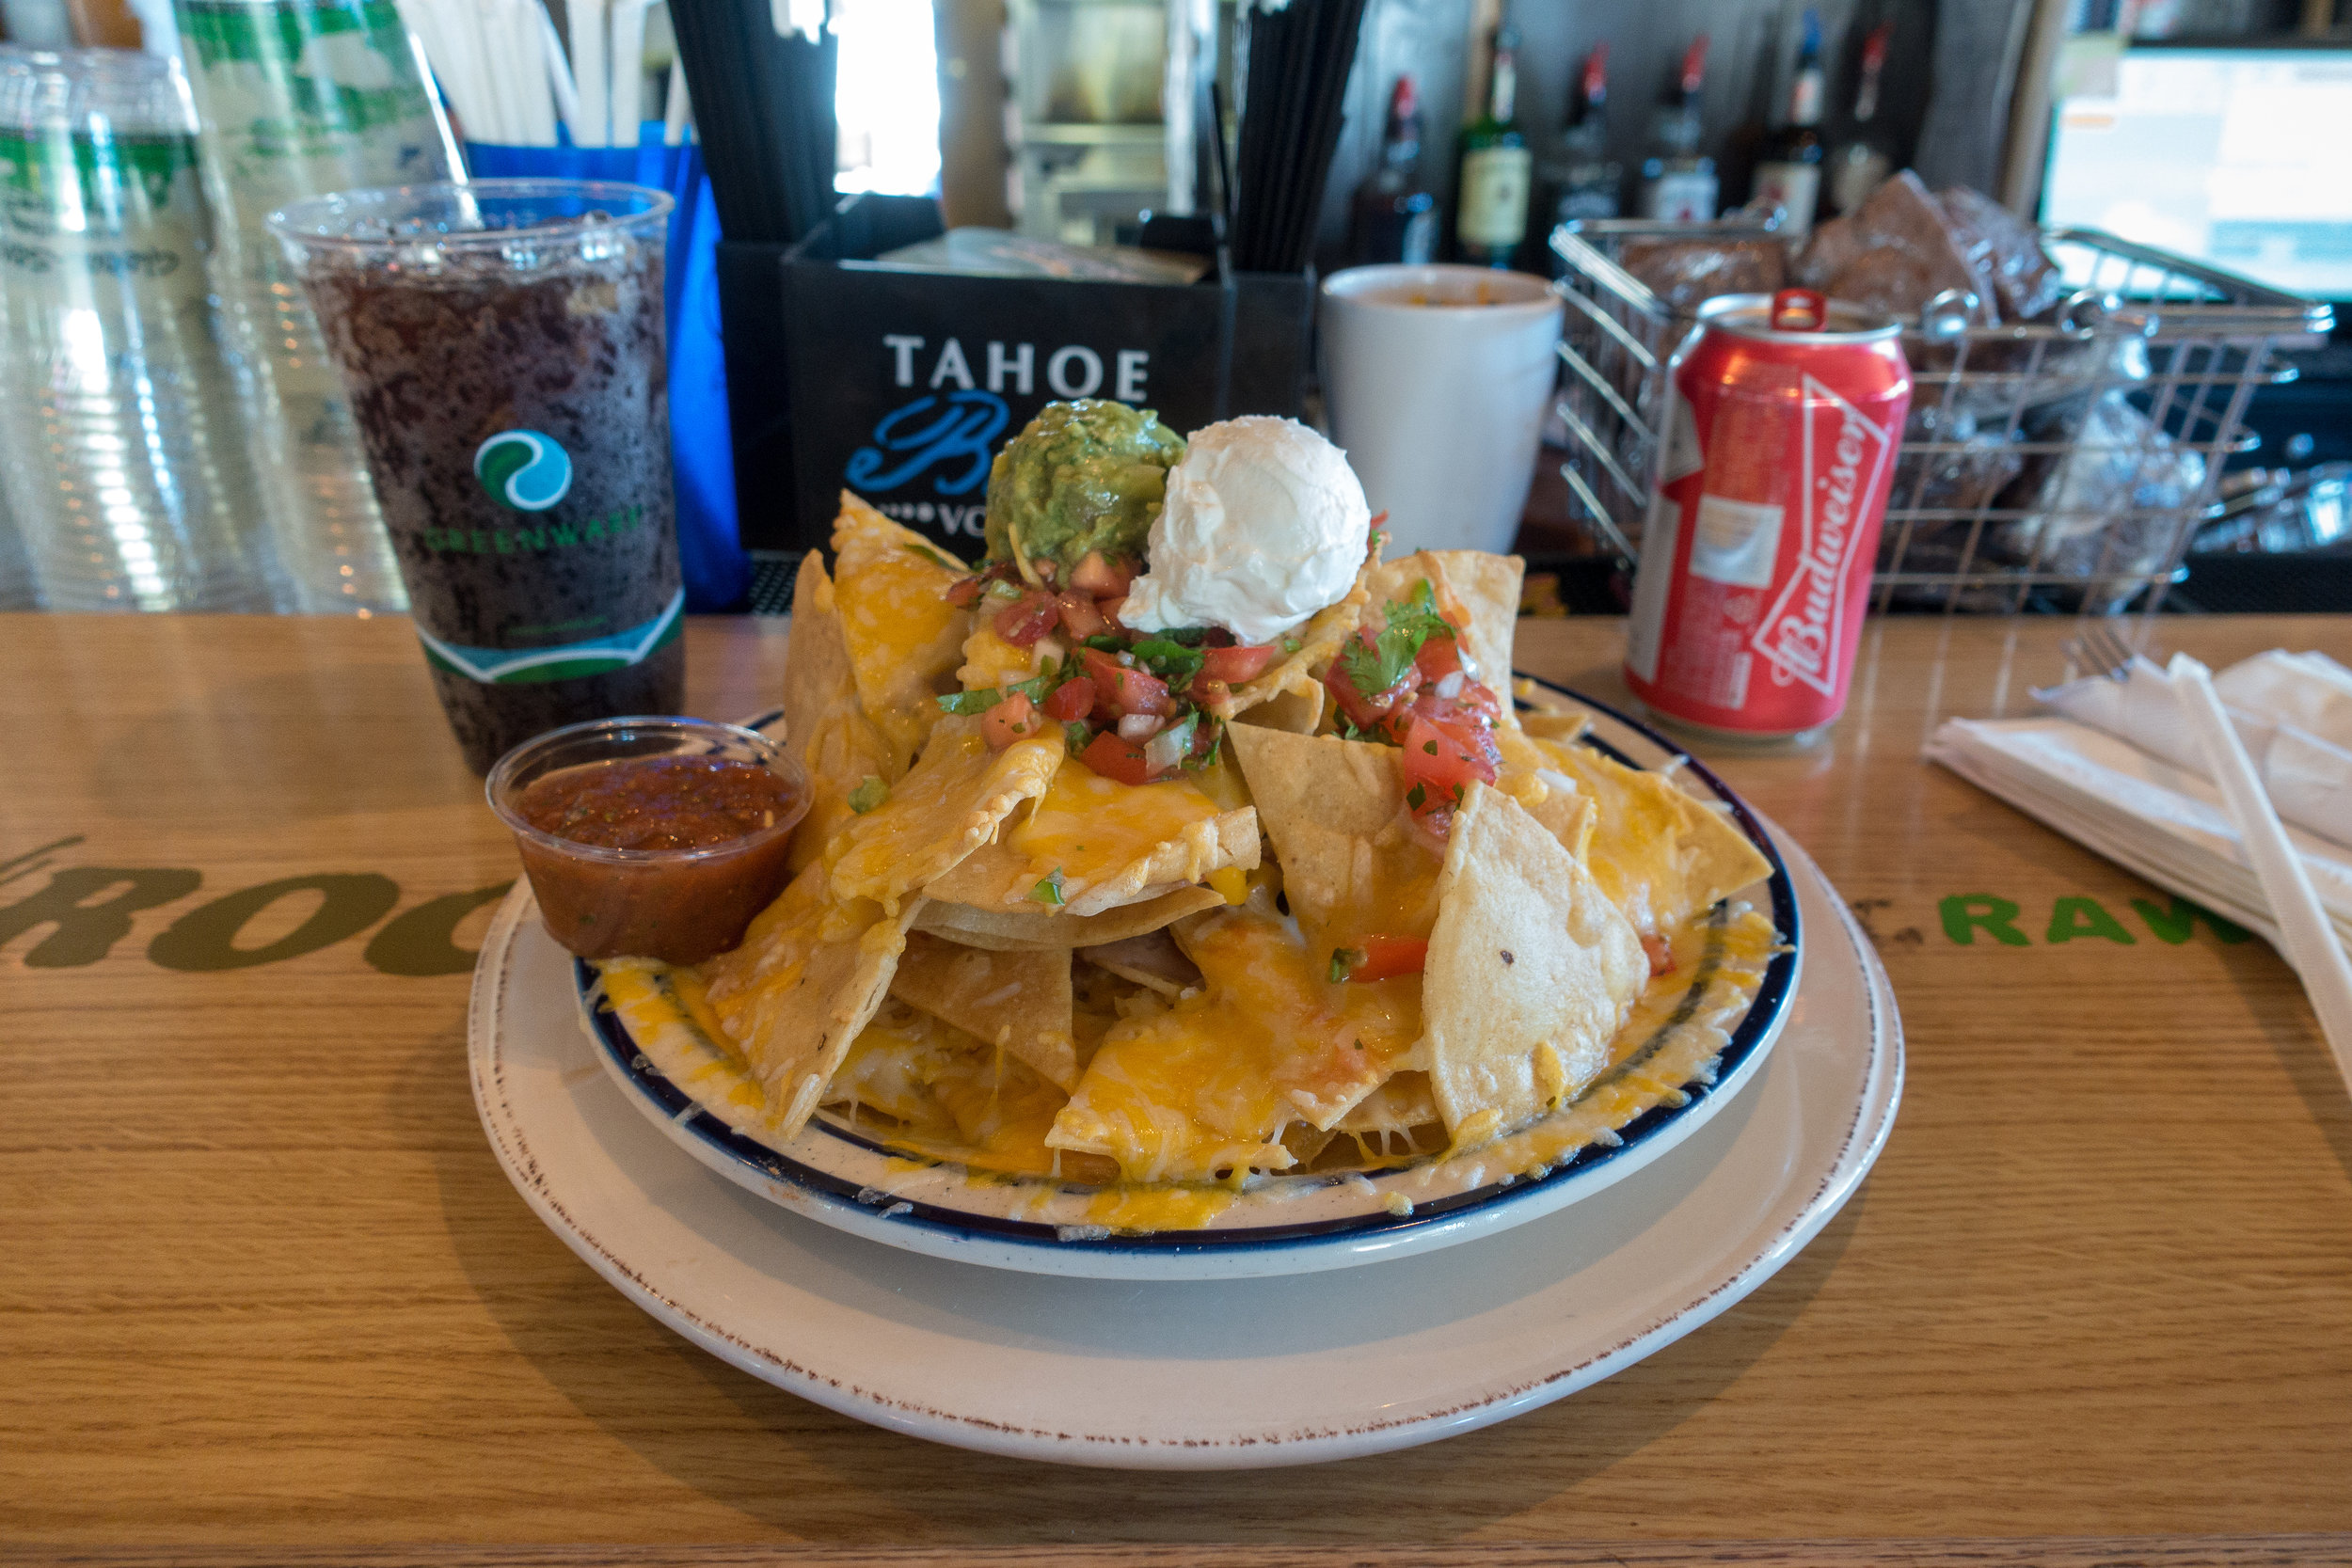 The mountain of nachos.